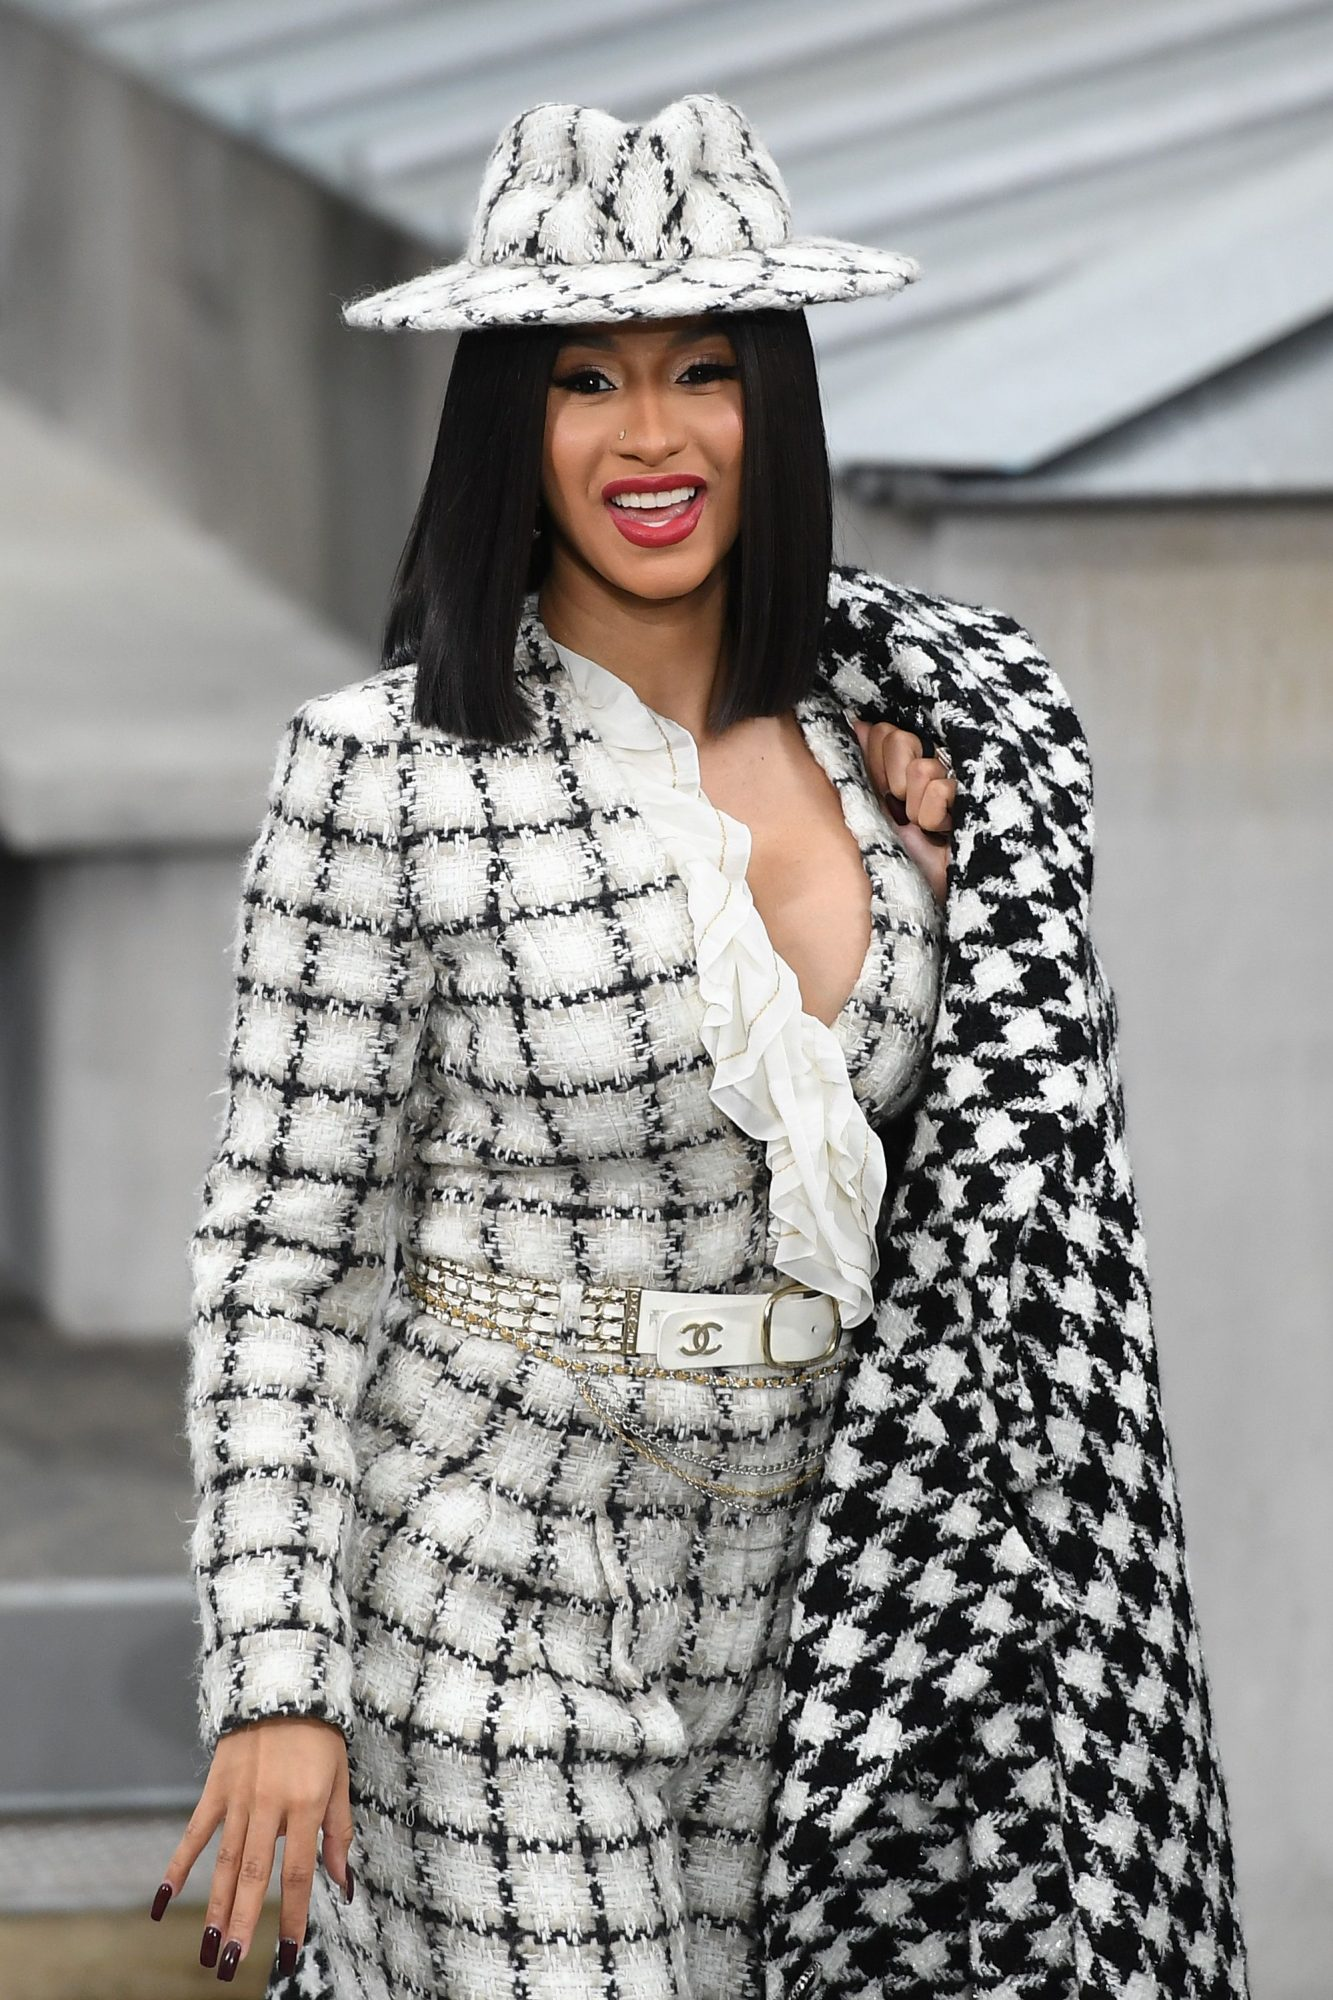 Cardi B Shuts Down Photo-Editing Rumors With Video of Her Abs